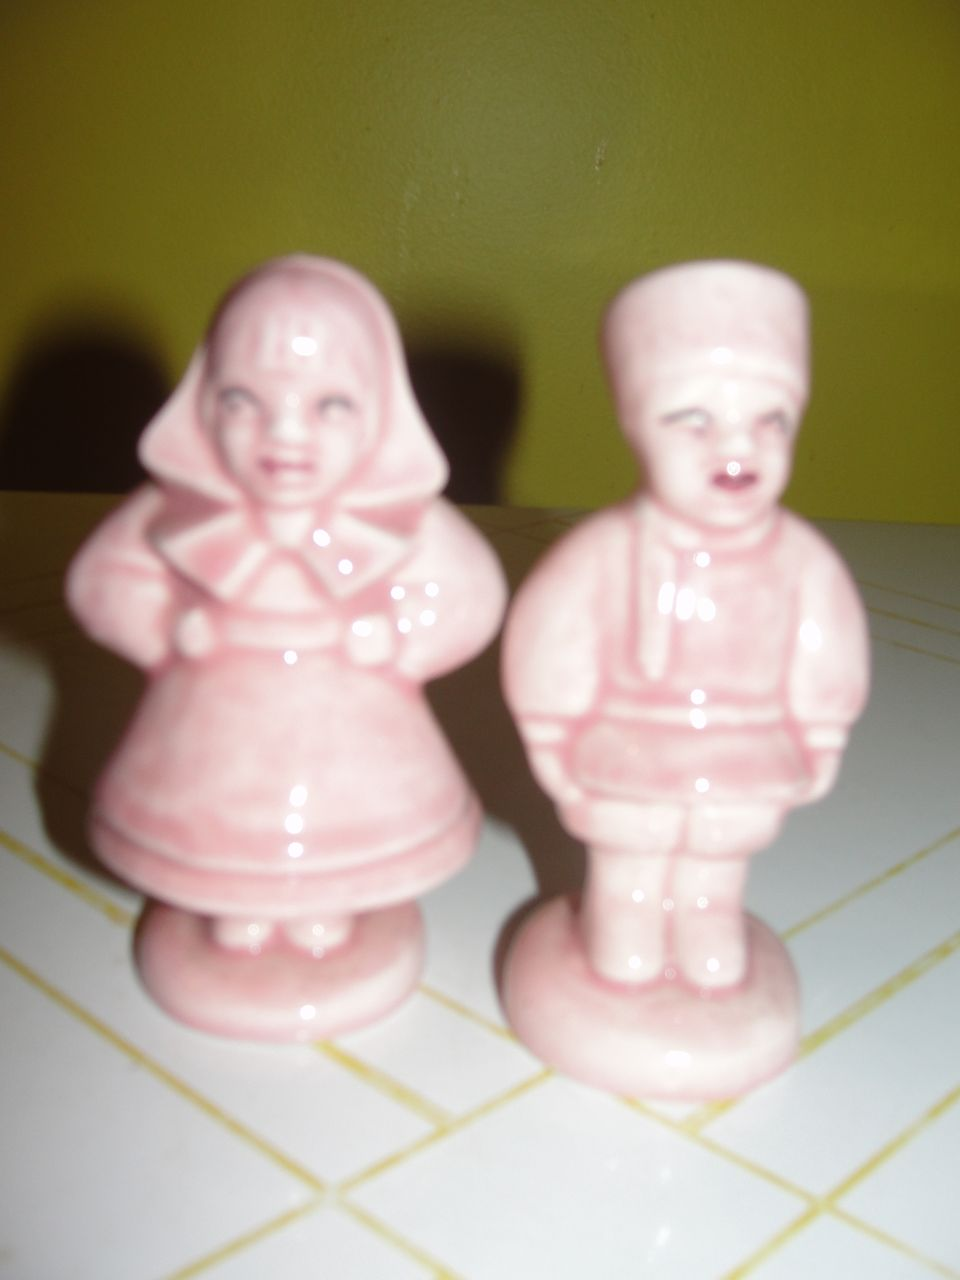 In the Pink Russian Lady and Man Salt and Pepper Shakers - b34